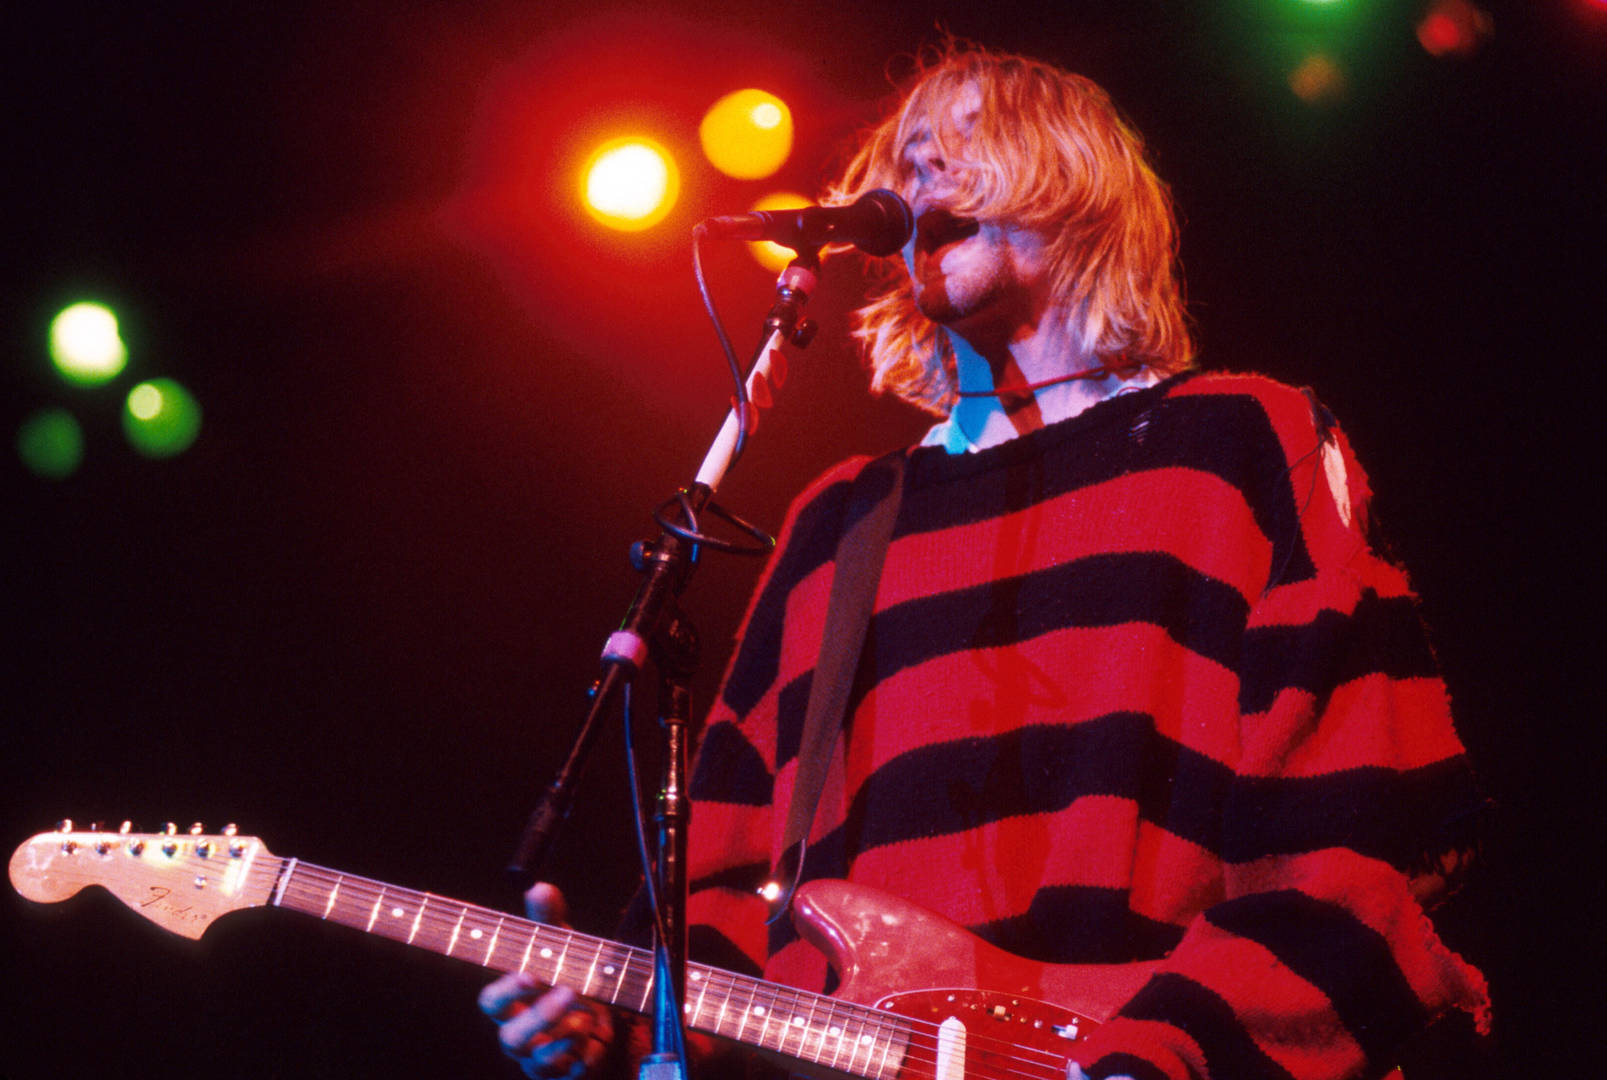 Kurt Cobain's Legacy Has Impacted Hip-Hop For Generations